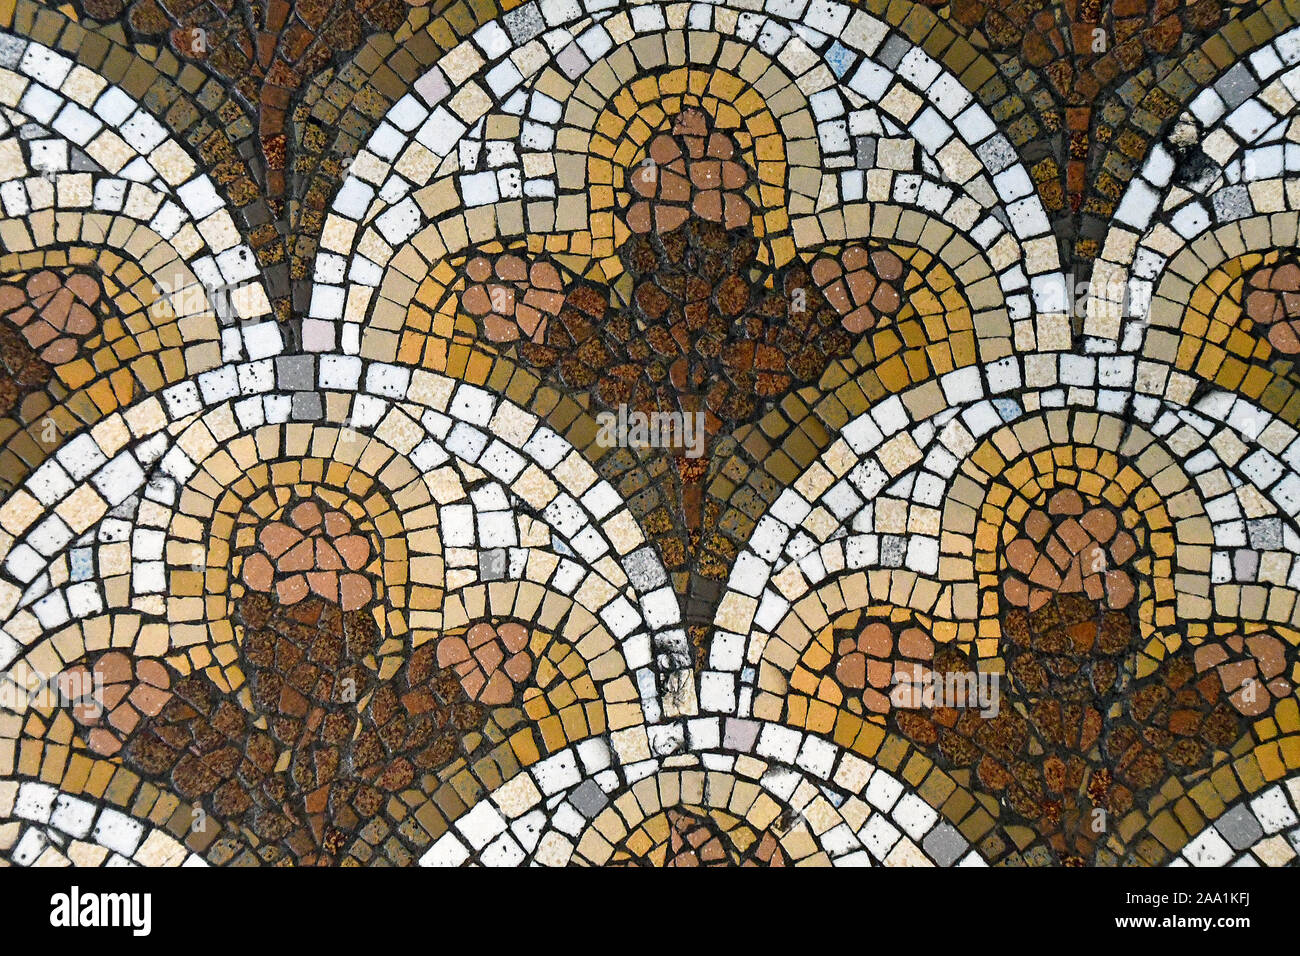 https www alamy com brown and gold ornate mosaic tile floor pattern image333180838 html